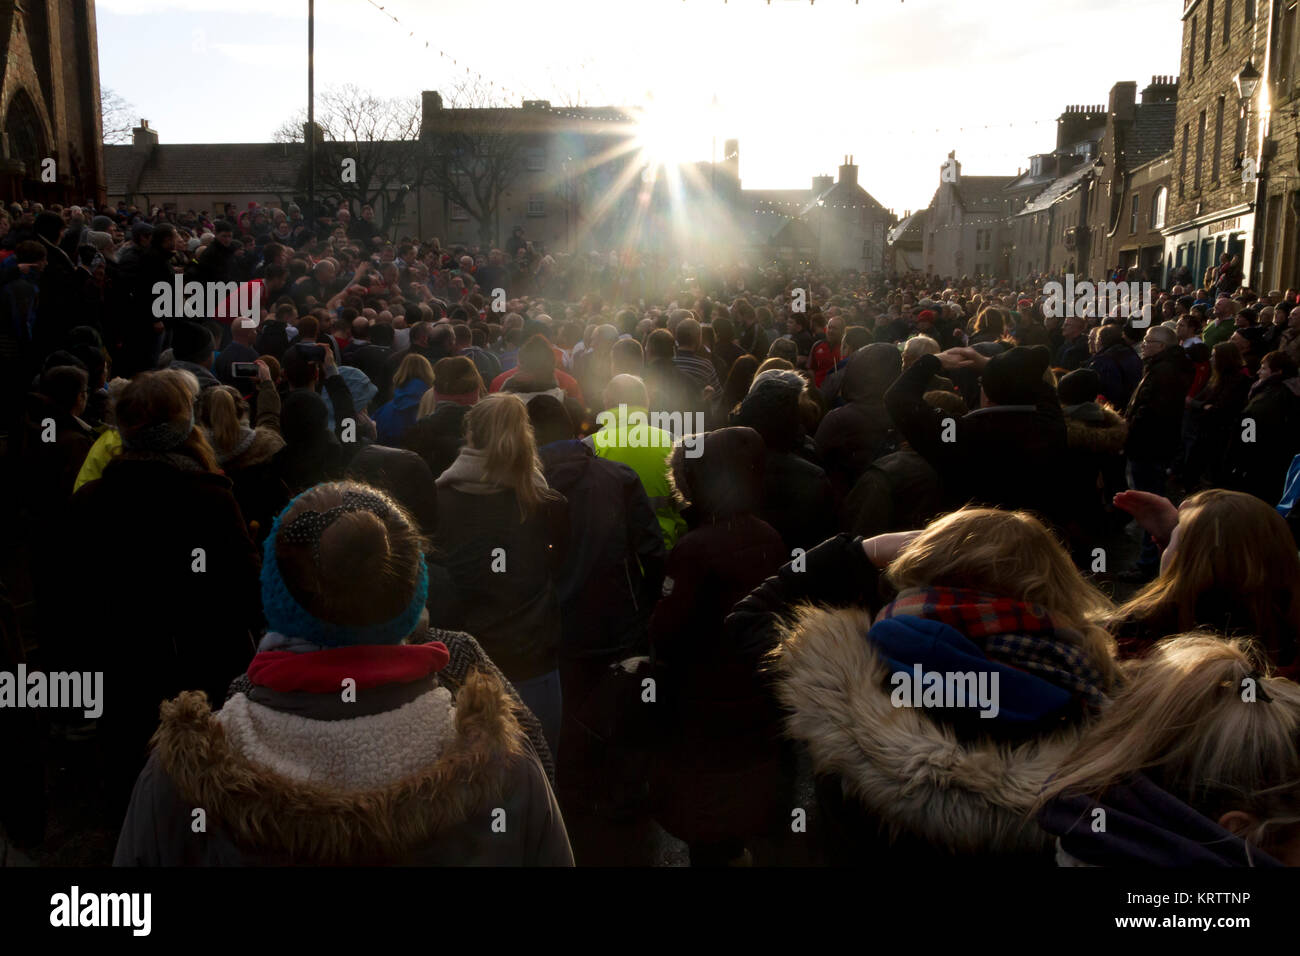 Crowds watching the Ba game in Kirkwall, Orkney isles - Stock Image